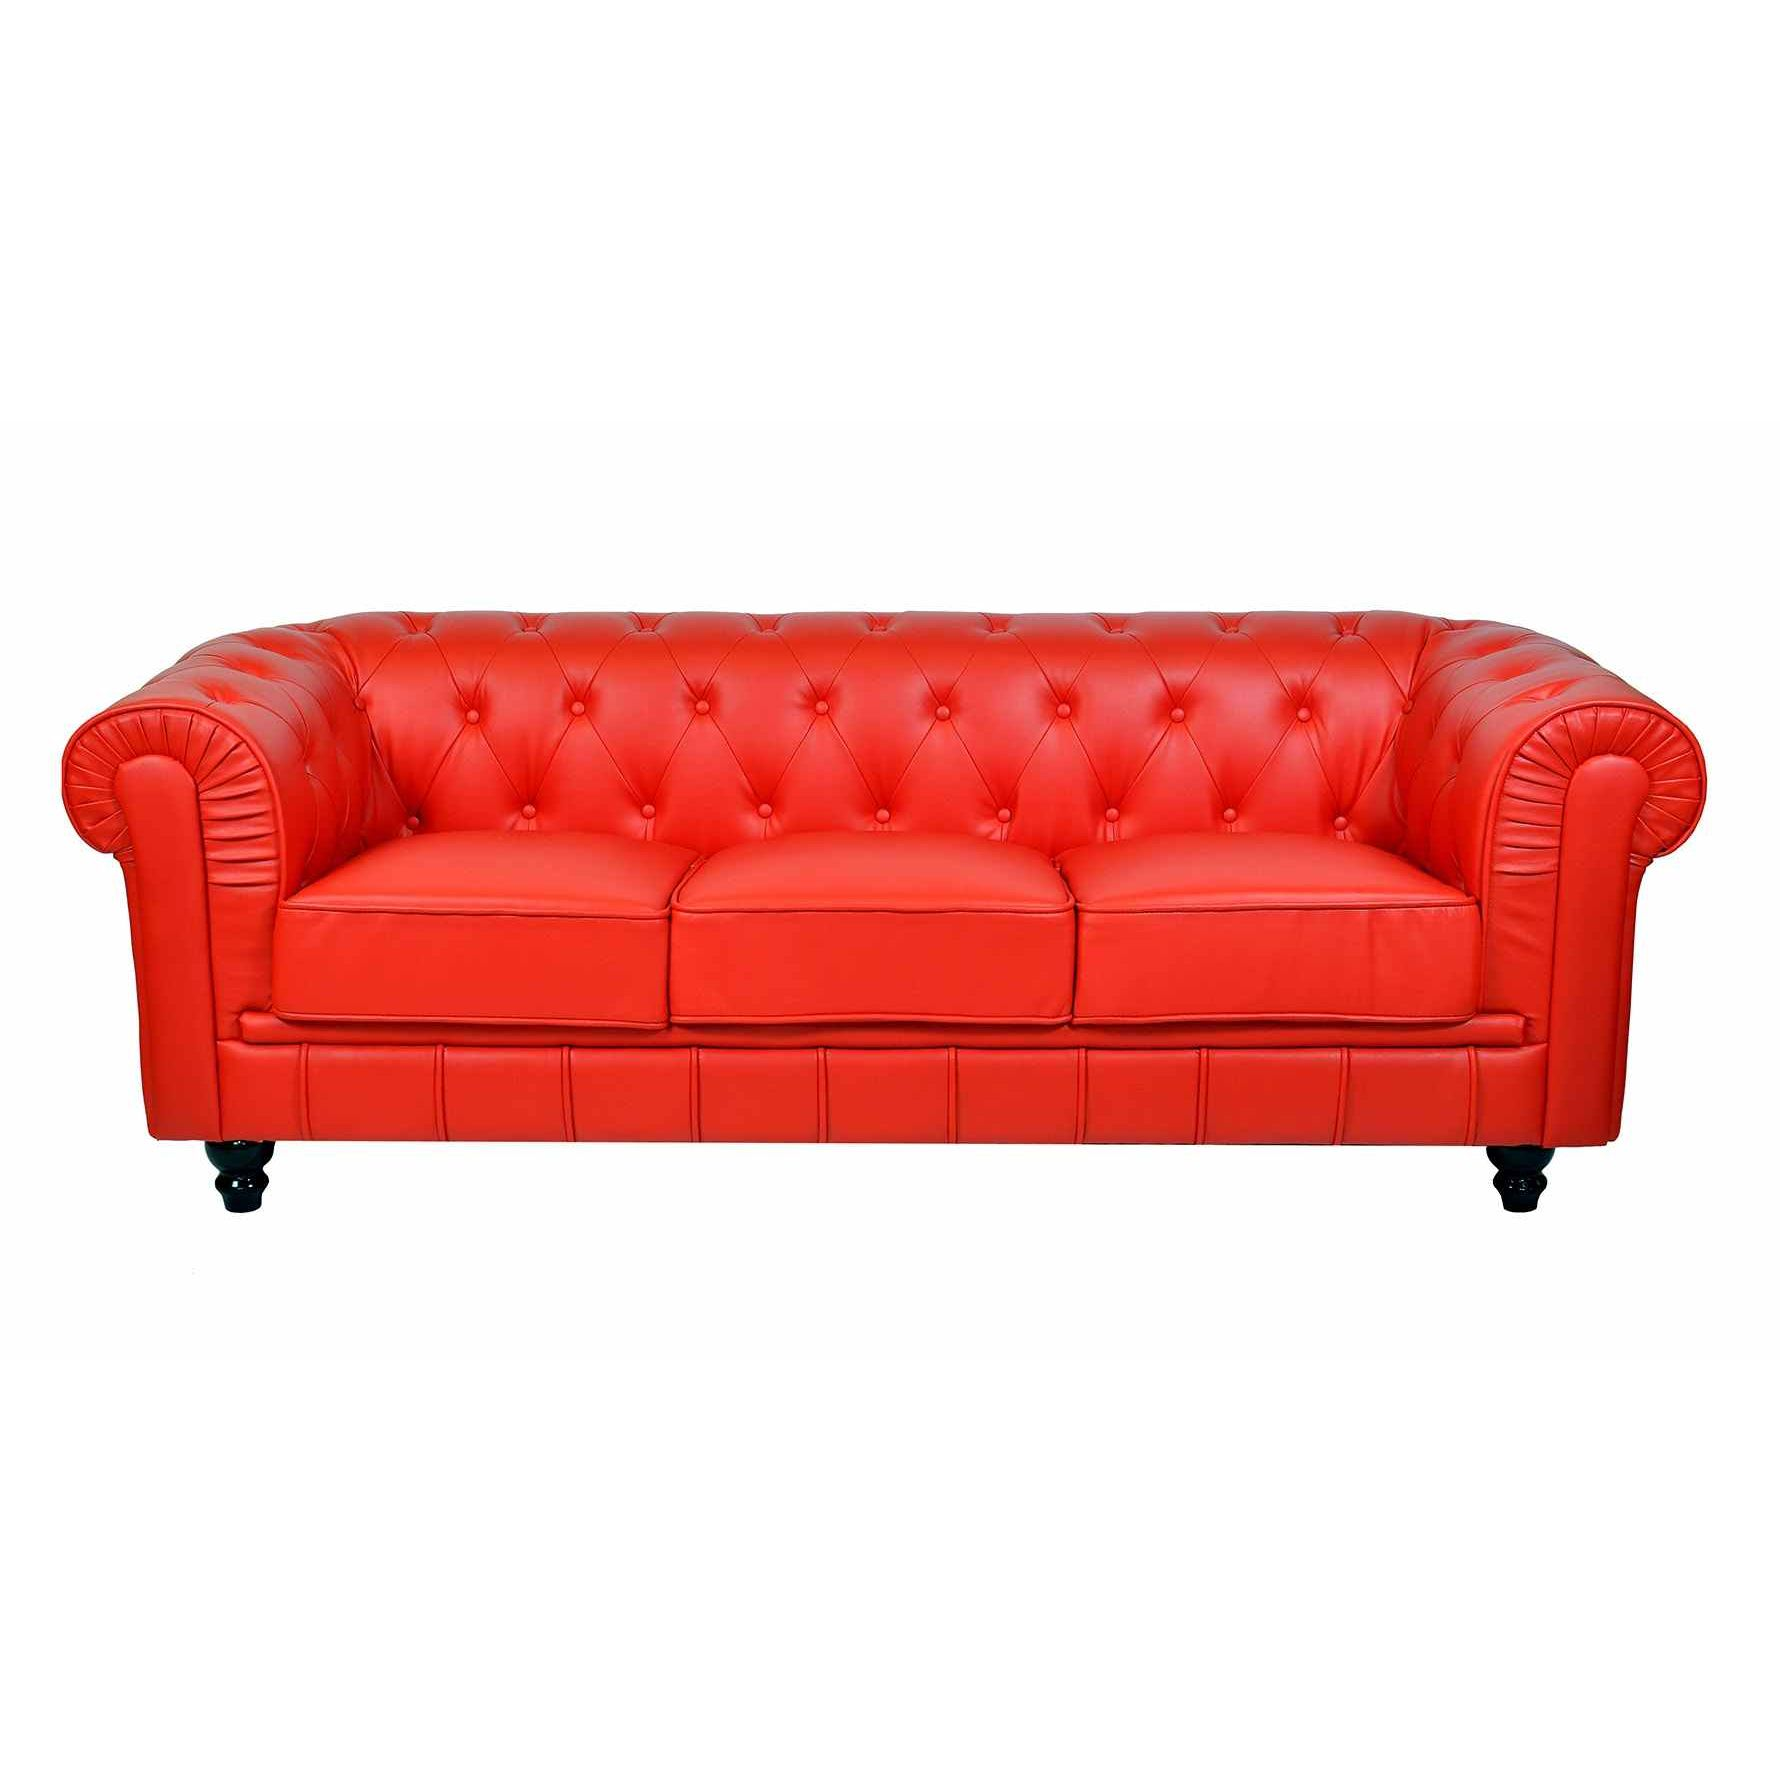 Deco In Paris Canape Chesterfield 3 Places Rouge Can Chester 3p Pu Rouge